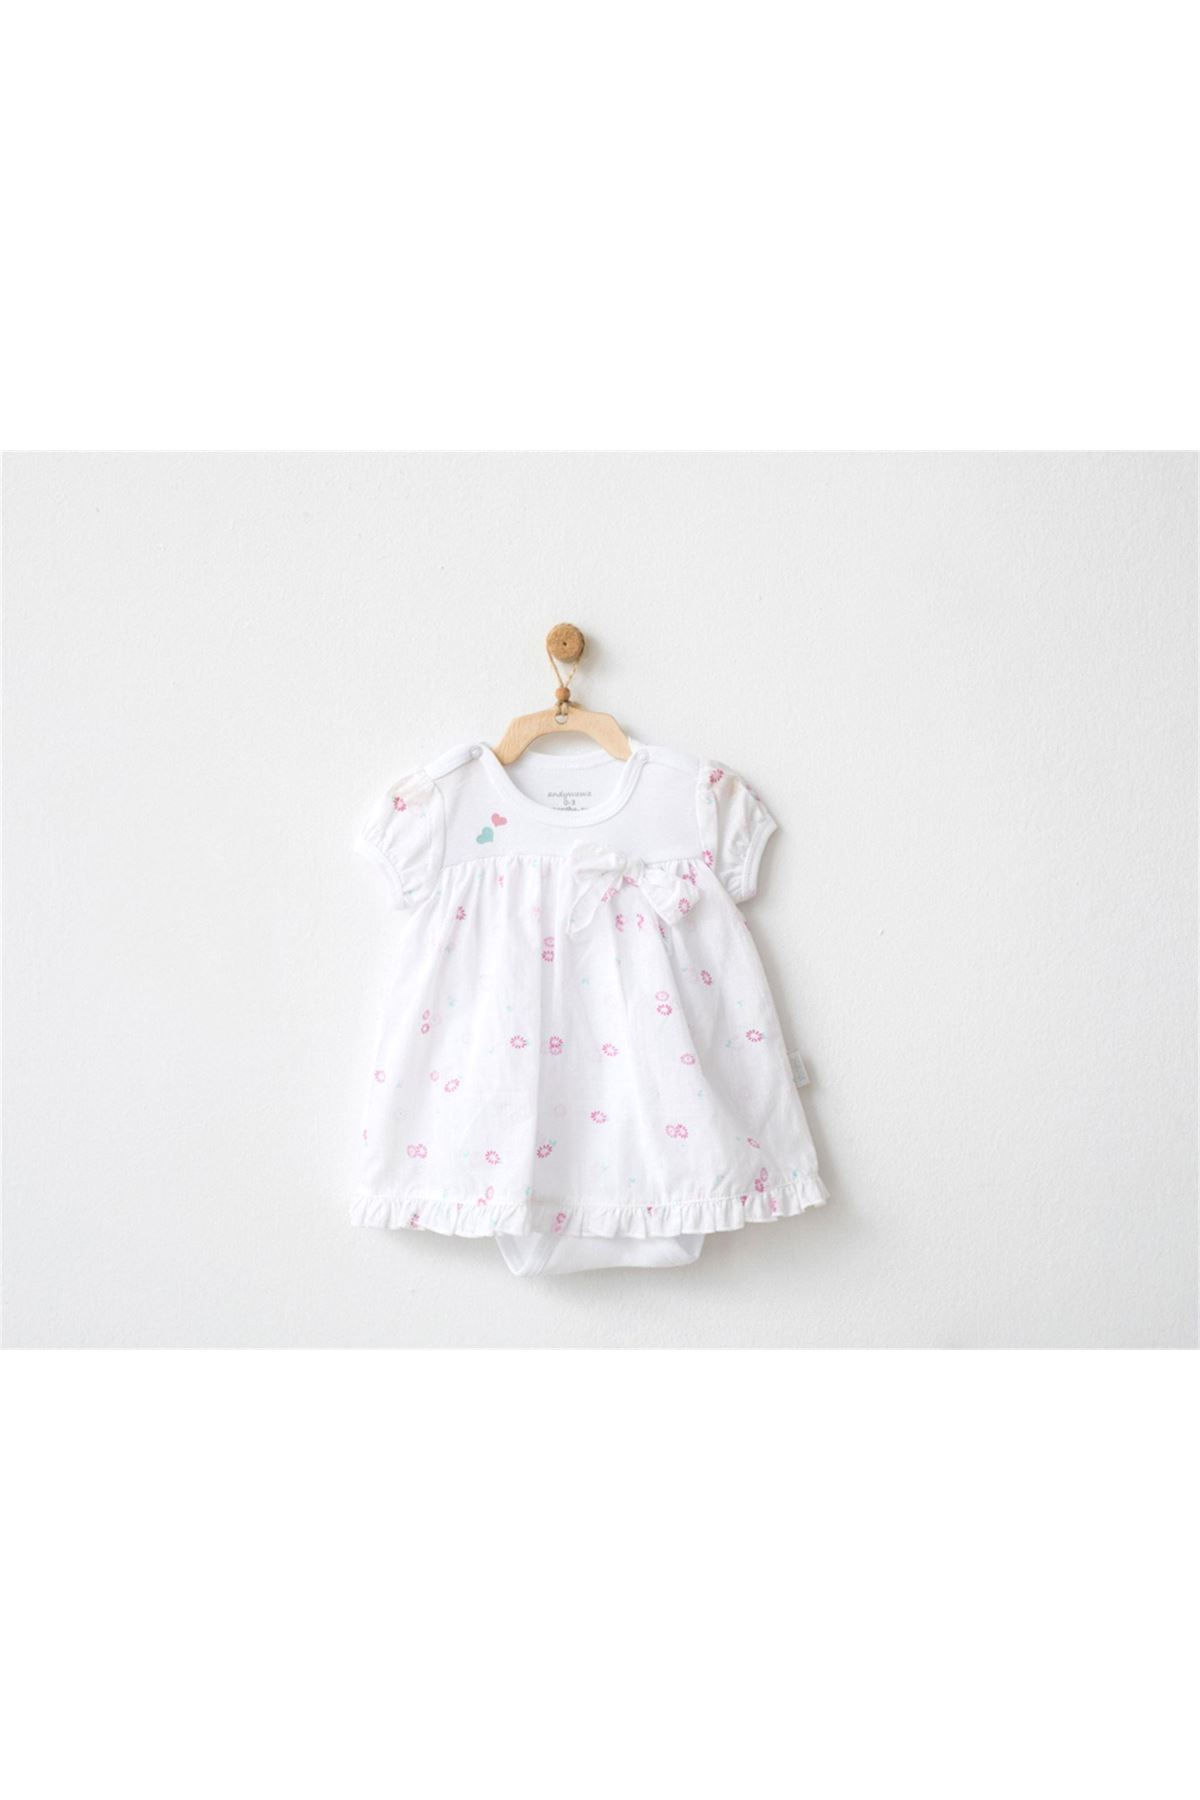 Andywawa AC20533 My Little Bunny Dream Elbise White